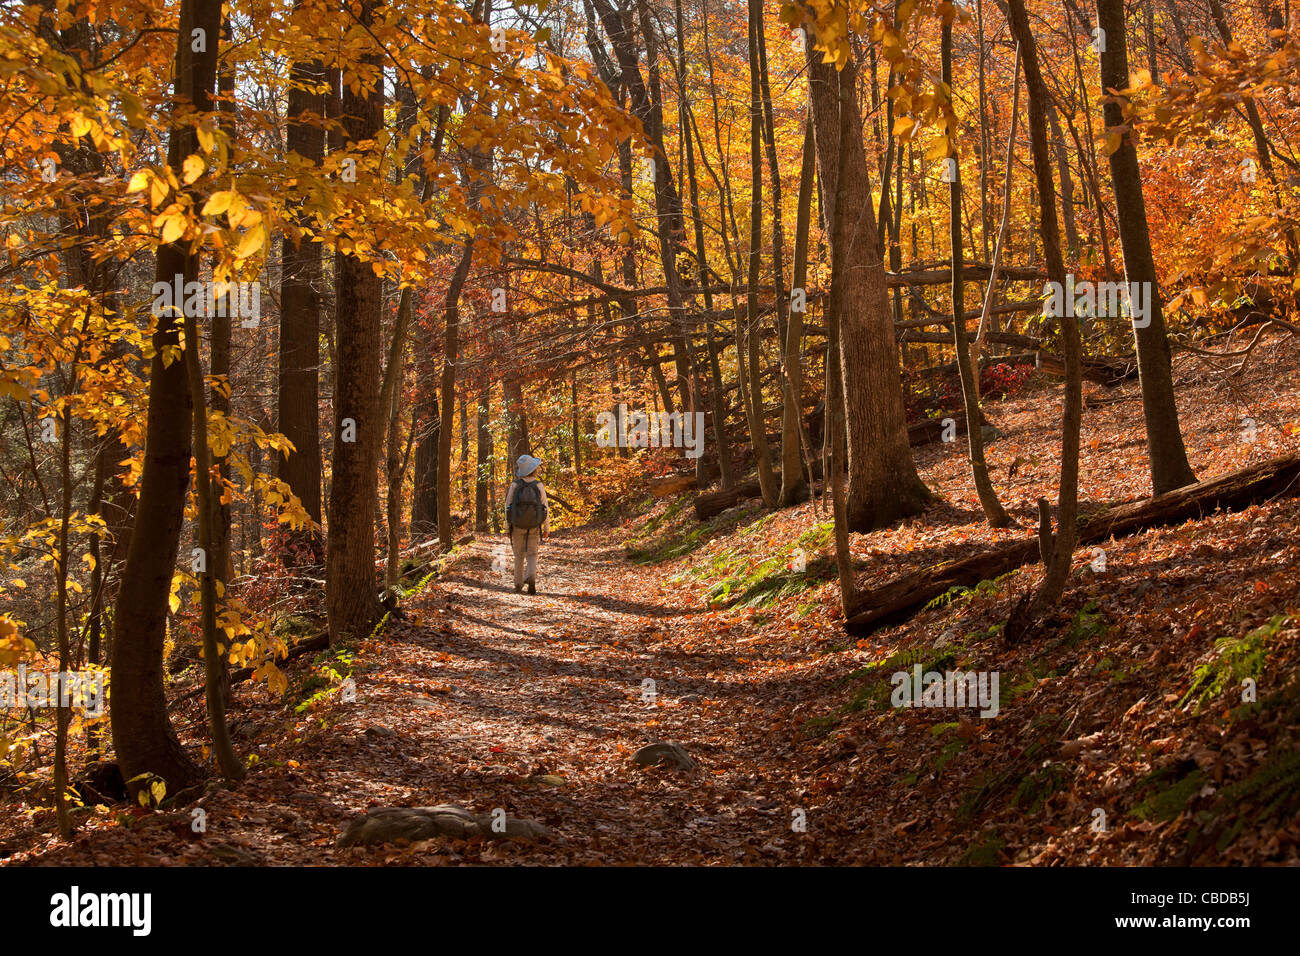 Walker on The Appalachian Trail (AT) in autumn at Delaware Gap, New Jersey, USA - Stock Image